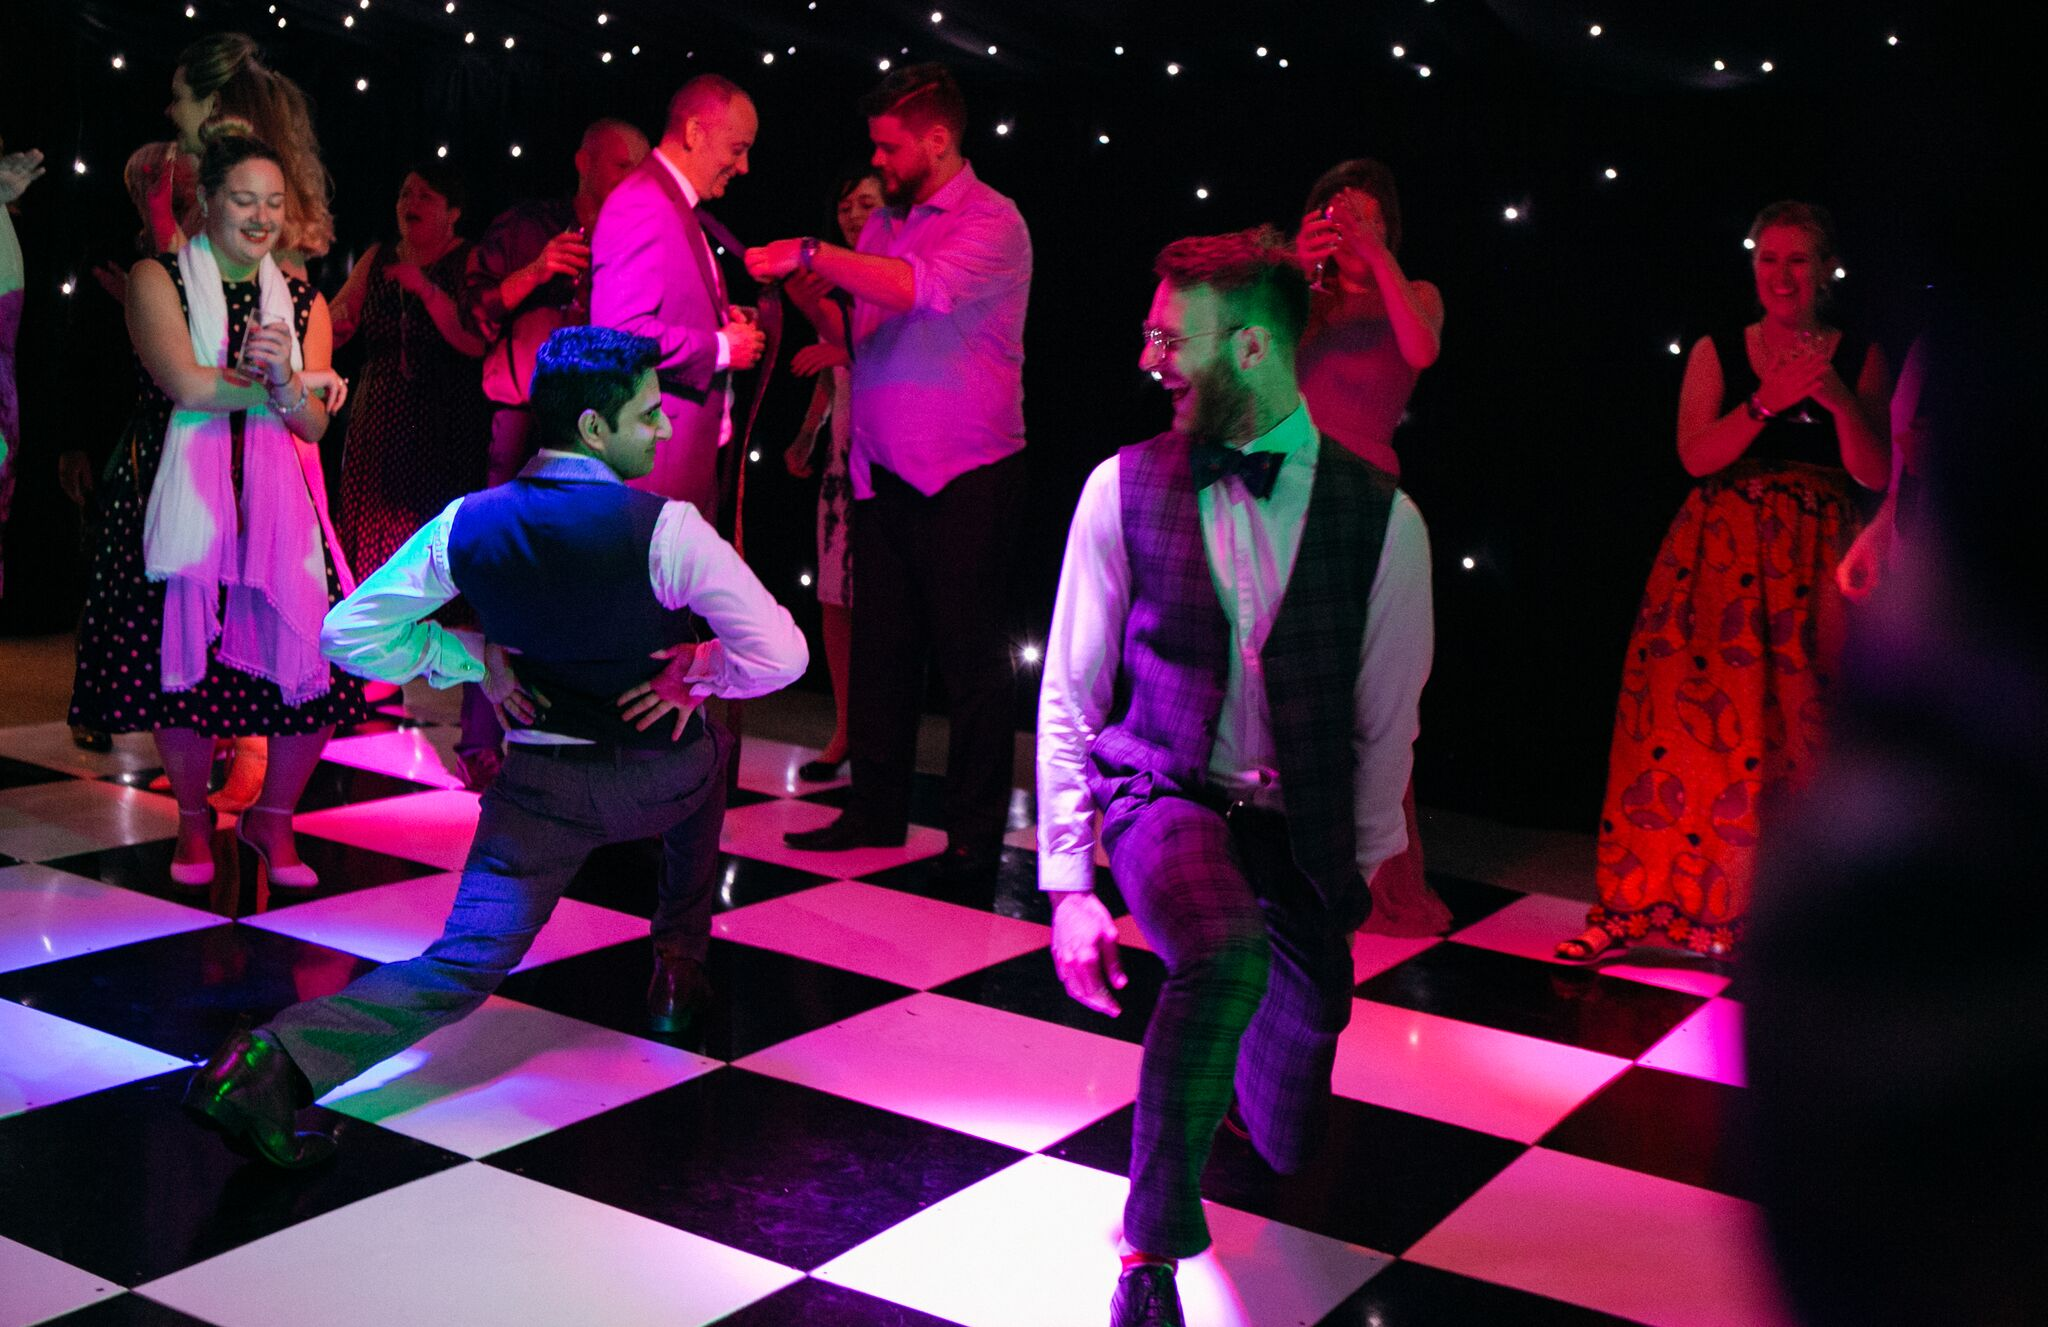 Guests dancing on the dance floor at Jen and Tom's wedding